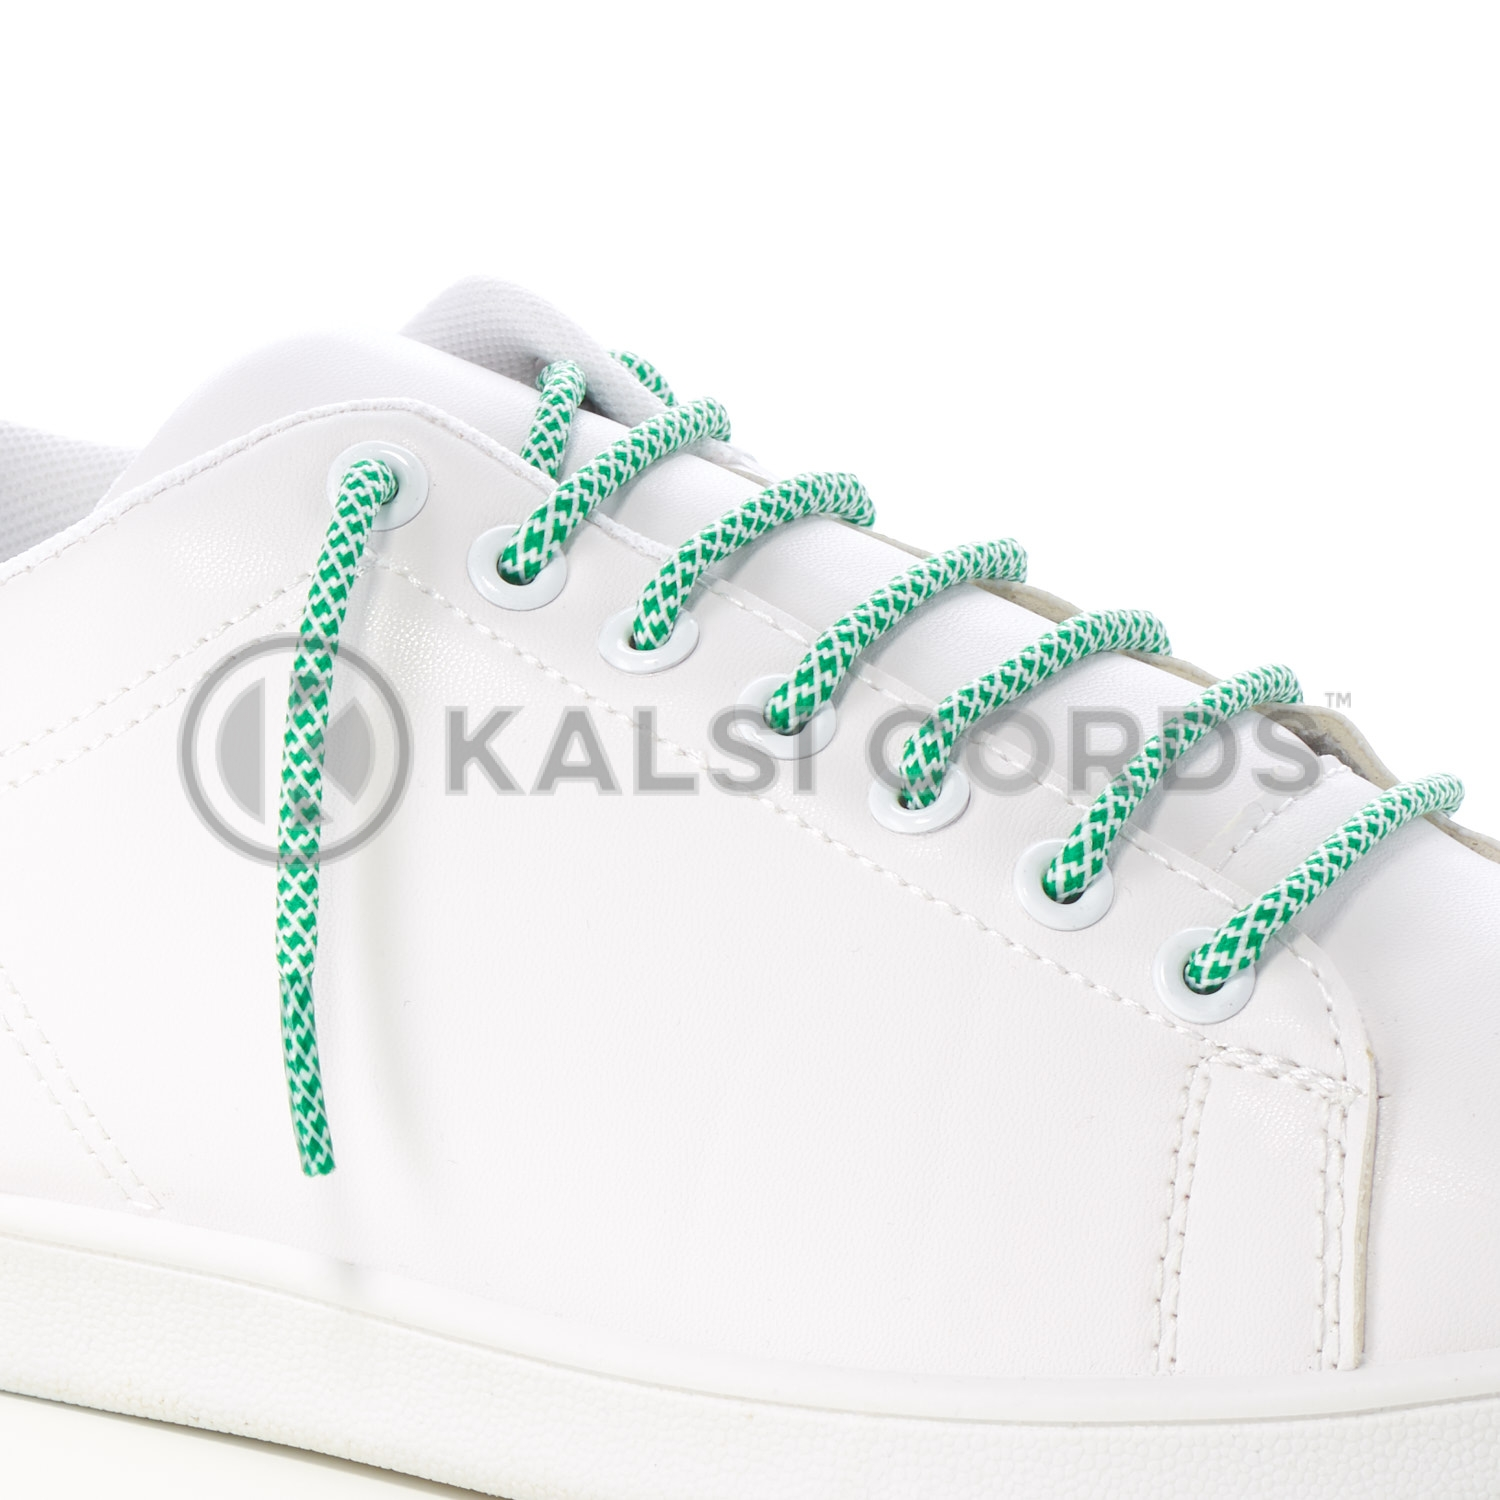 T655 5mm Round Cord Honeycomb Shoe Lace Emerald Green White Kids Trainers Adults Adidas Yeezy Boost Hiking Walking Boots Kalsi Cords